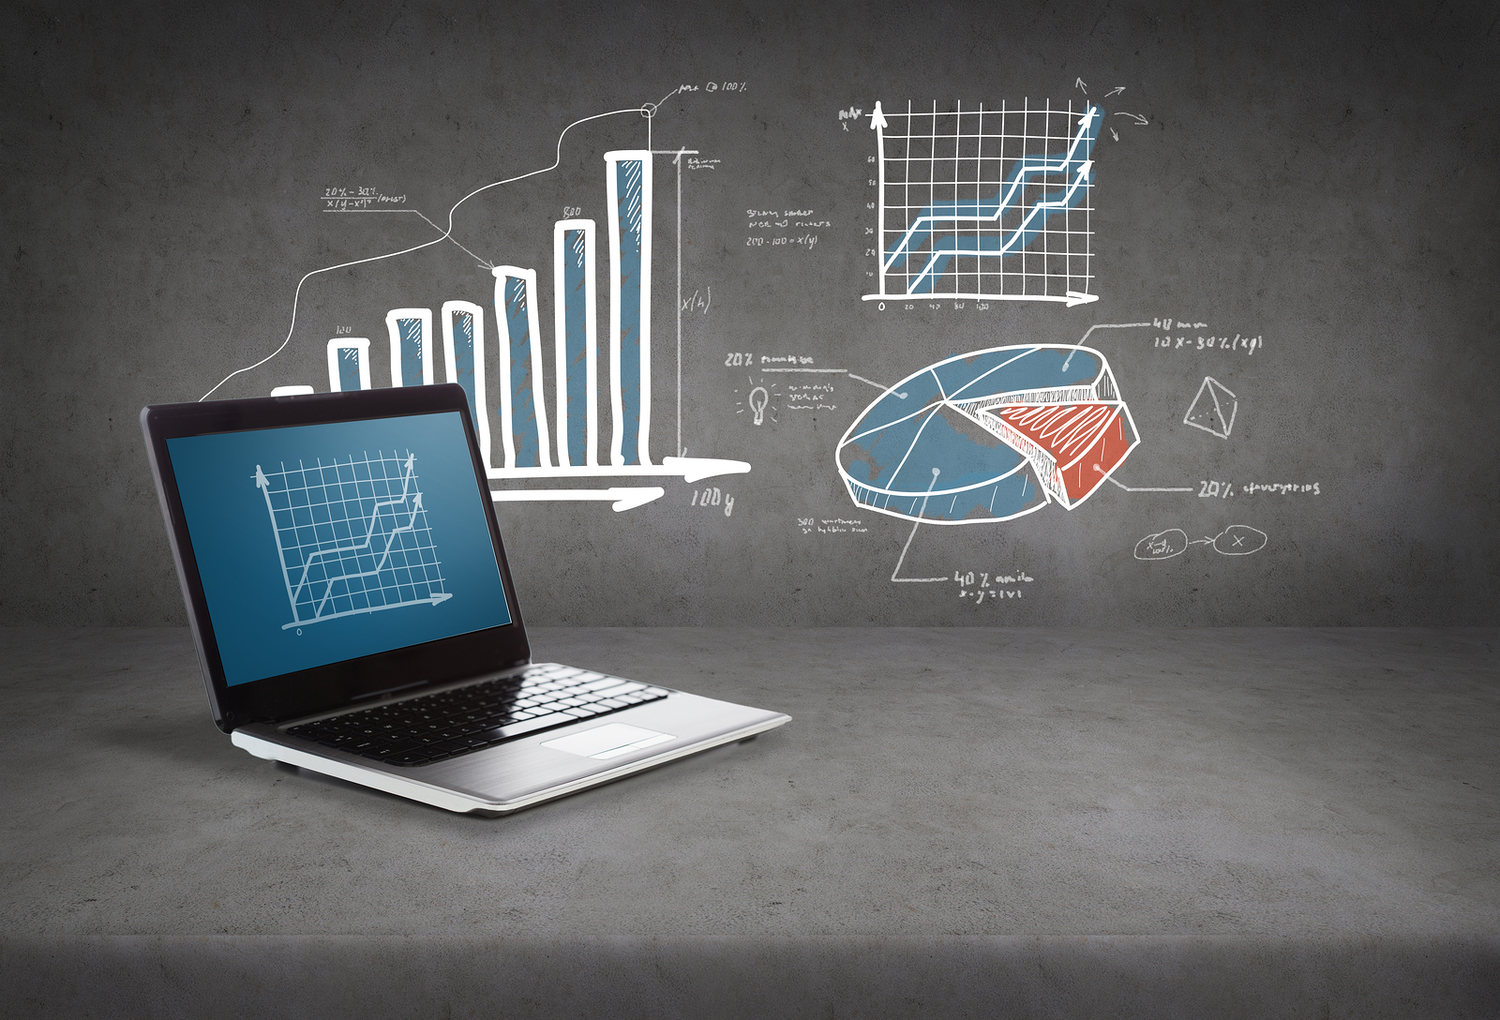 Programmatic Advertising to Grow 31% in 2017